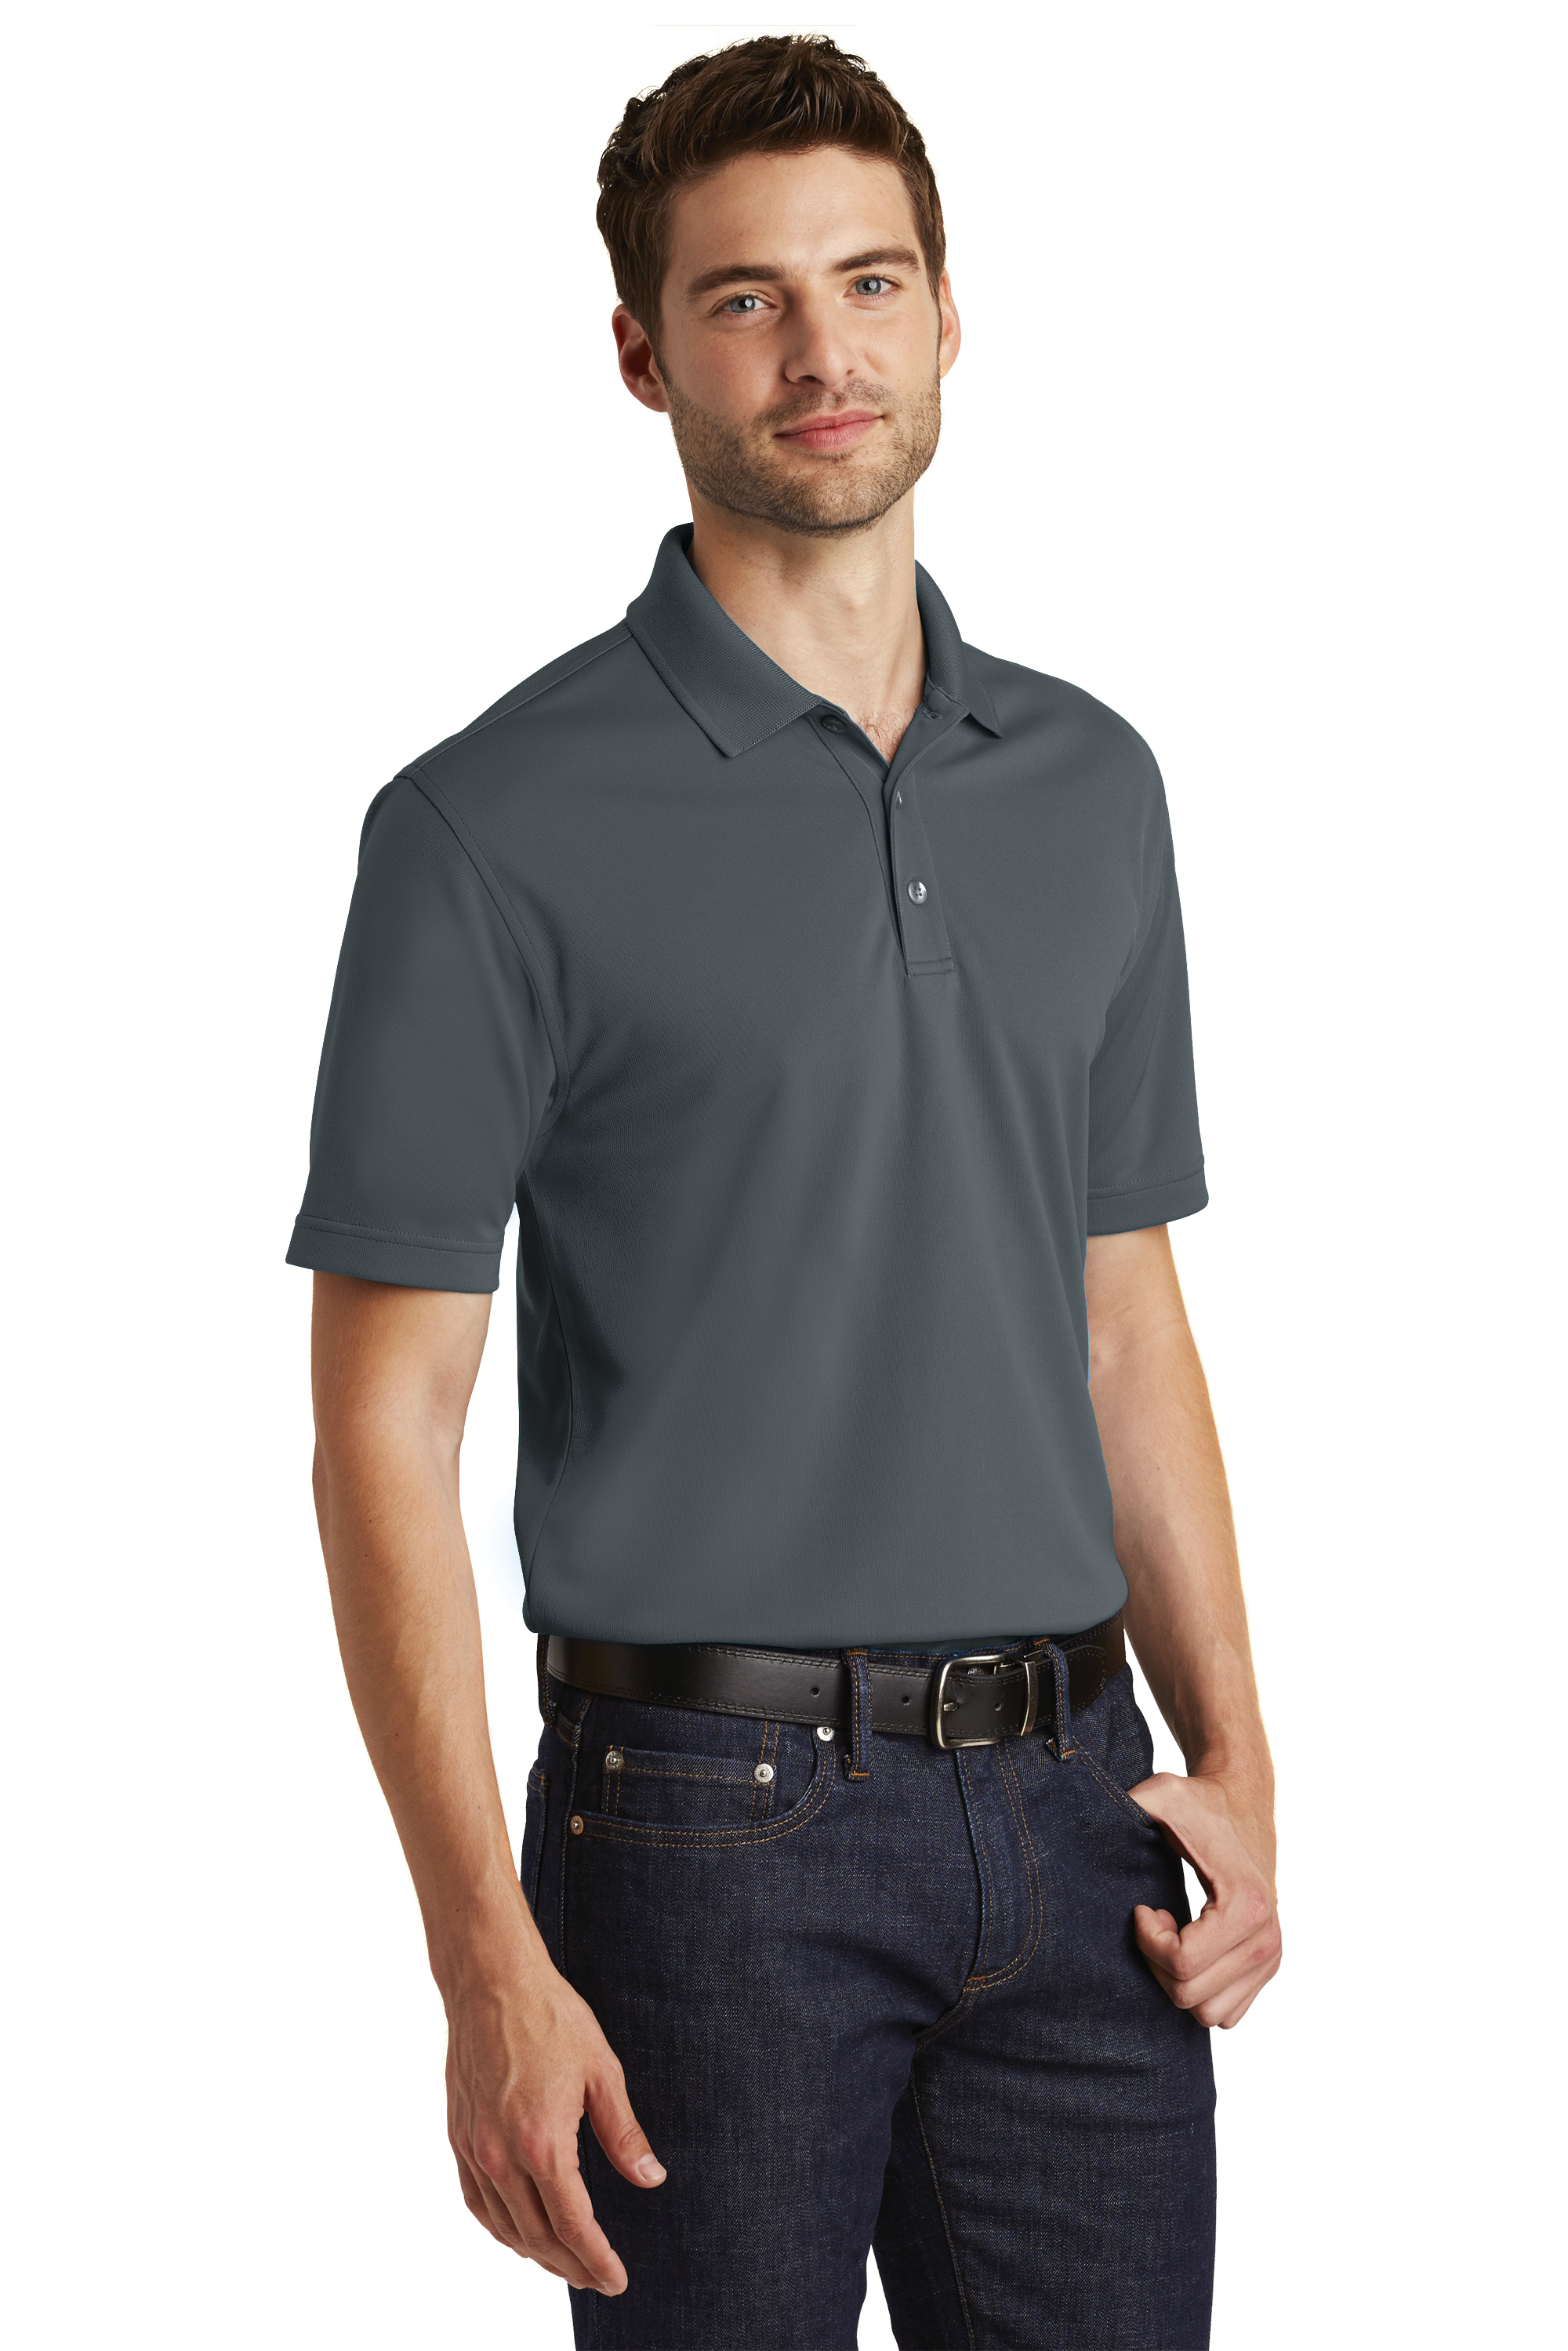 f5b003edc02a7 Port Authority® Dry Zone® UV Micro-Mesh Polo with custom embroidery ...